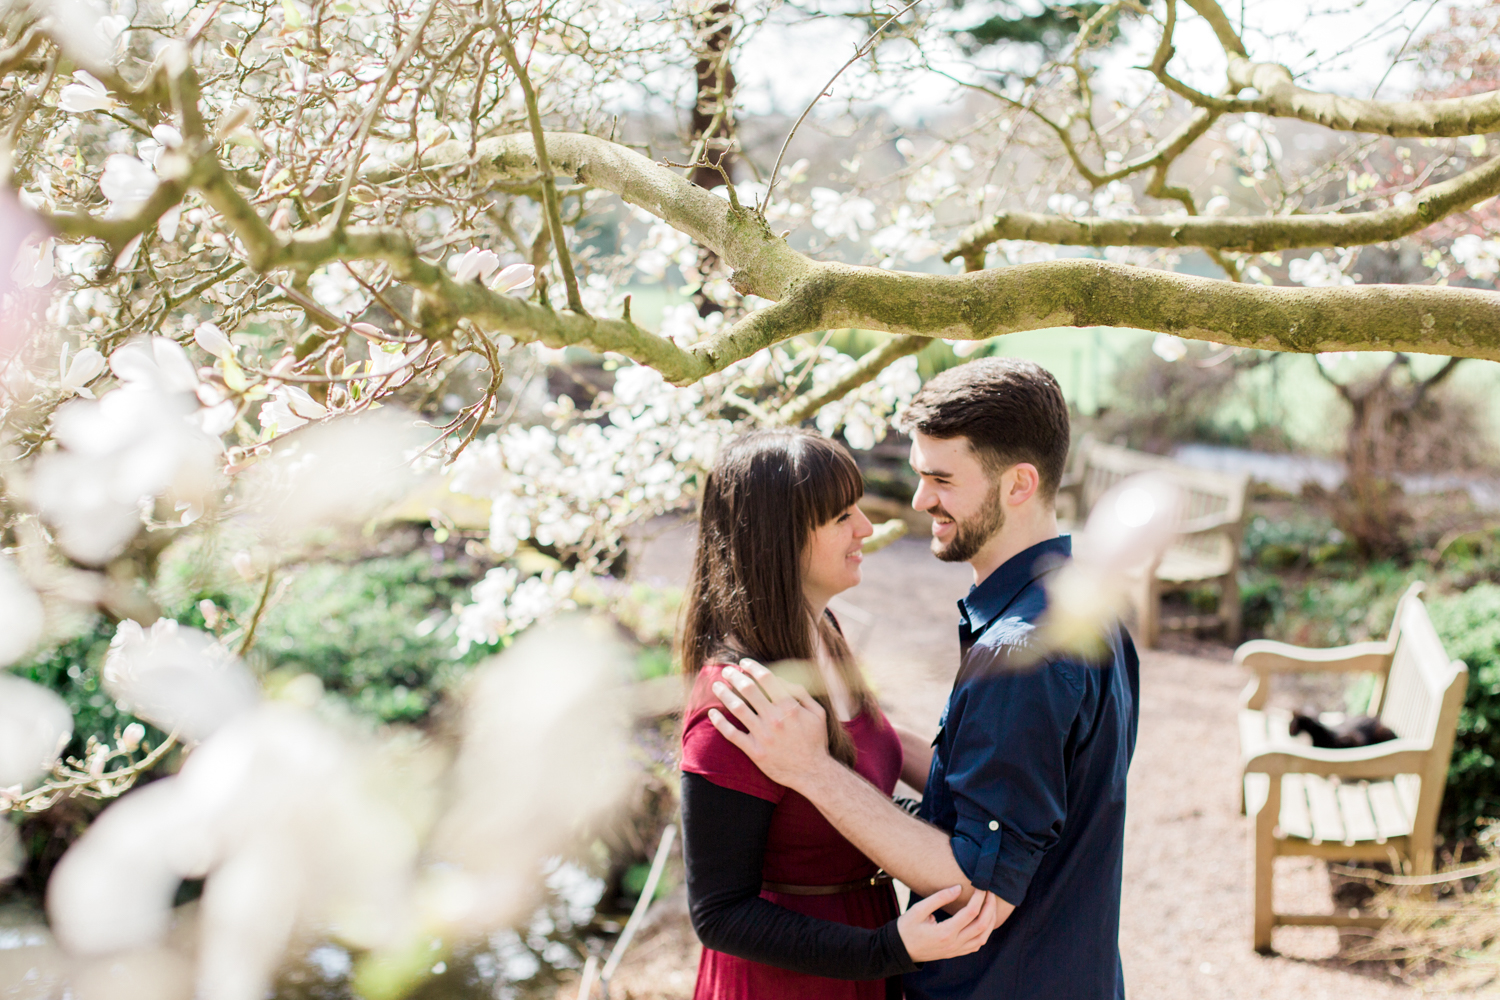 Sophie Evans Photography, Alice & Nathanael Botanical Gardens Engagement Shoot. Warwickshire Wedding Photographer (19).jpg